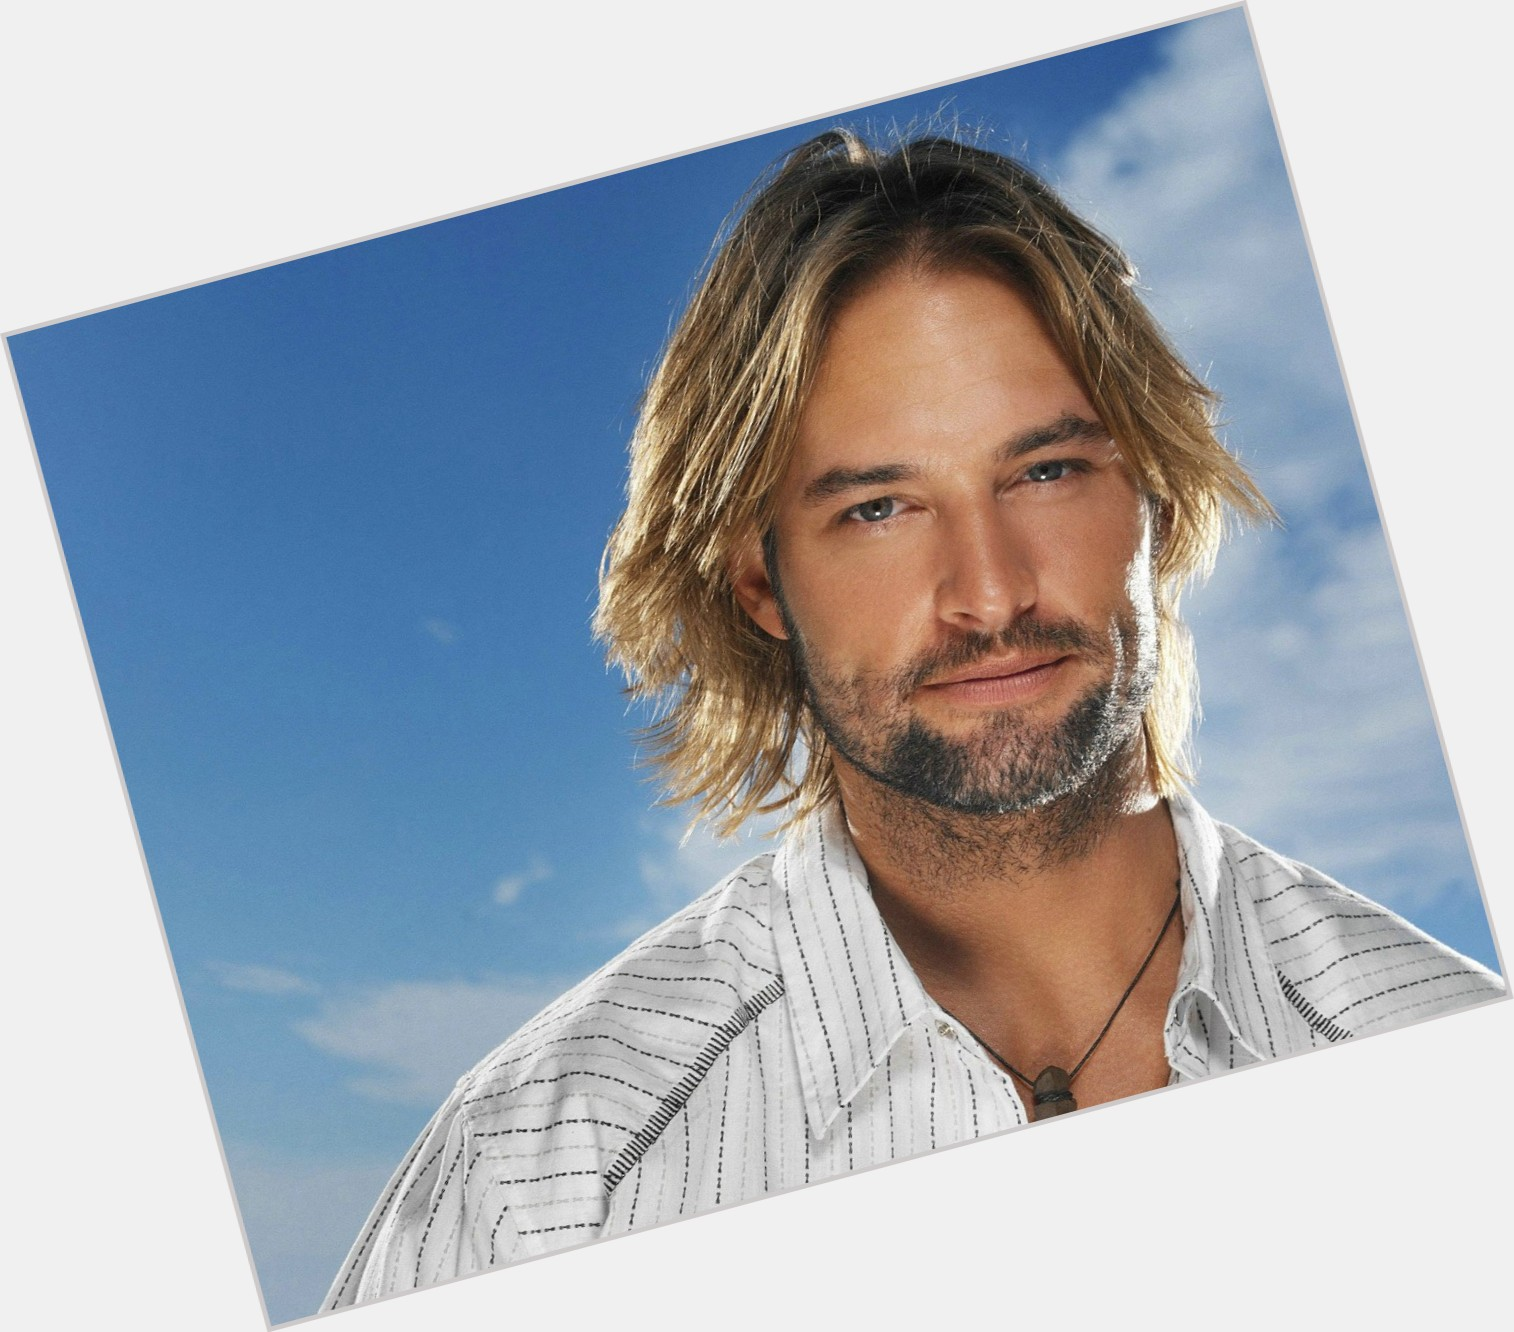 josh holloway wife and baby 1.jpg